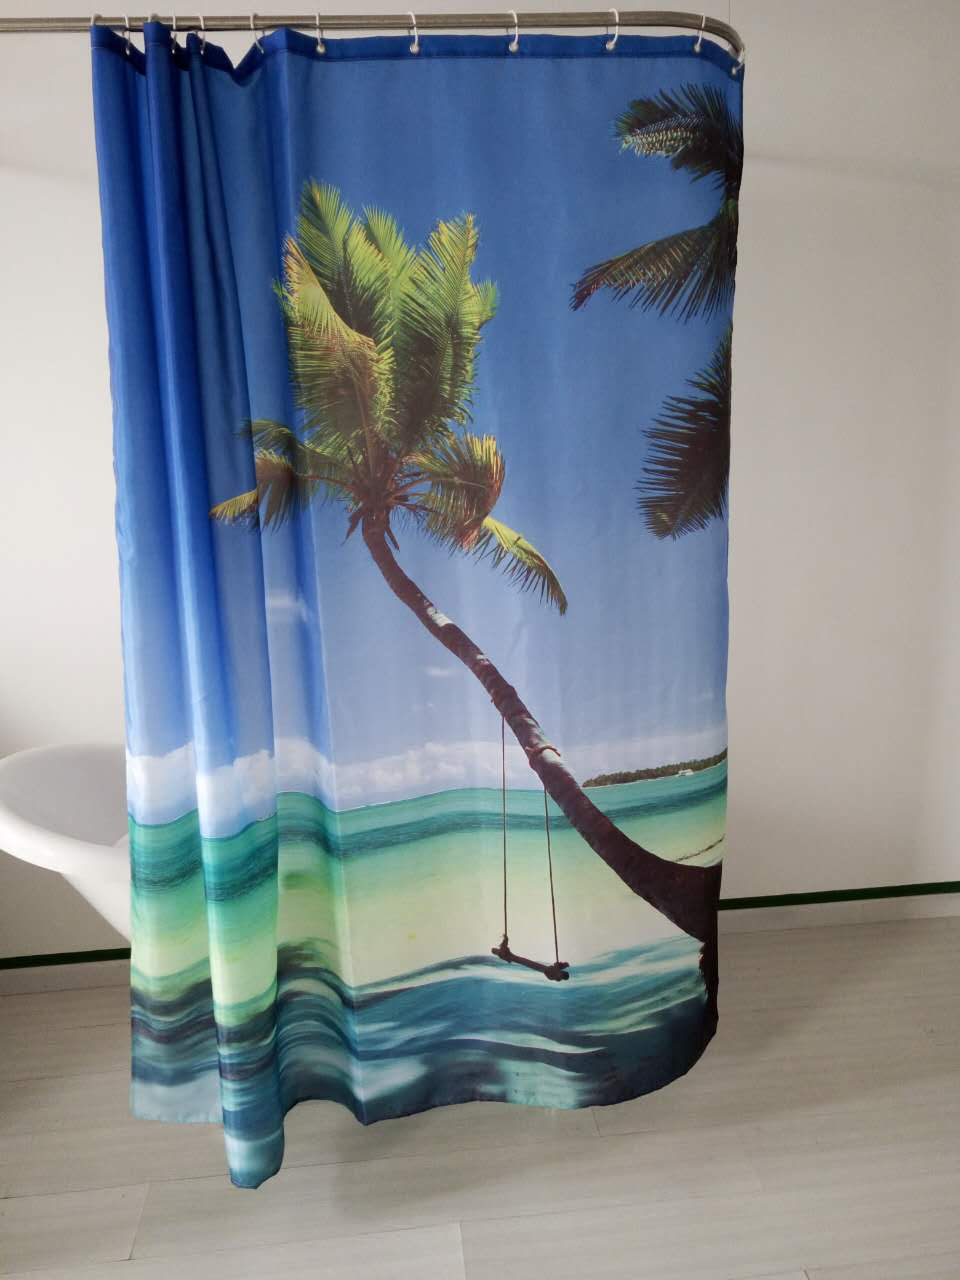 Blue bathroom curtains - Coconut Tree Blue Sky Kitchen Drapes Sand Beach Design Waterproof Shower Bathroom Curtains 180 180cm